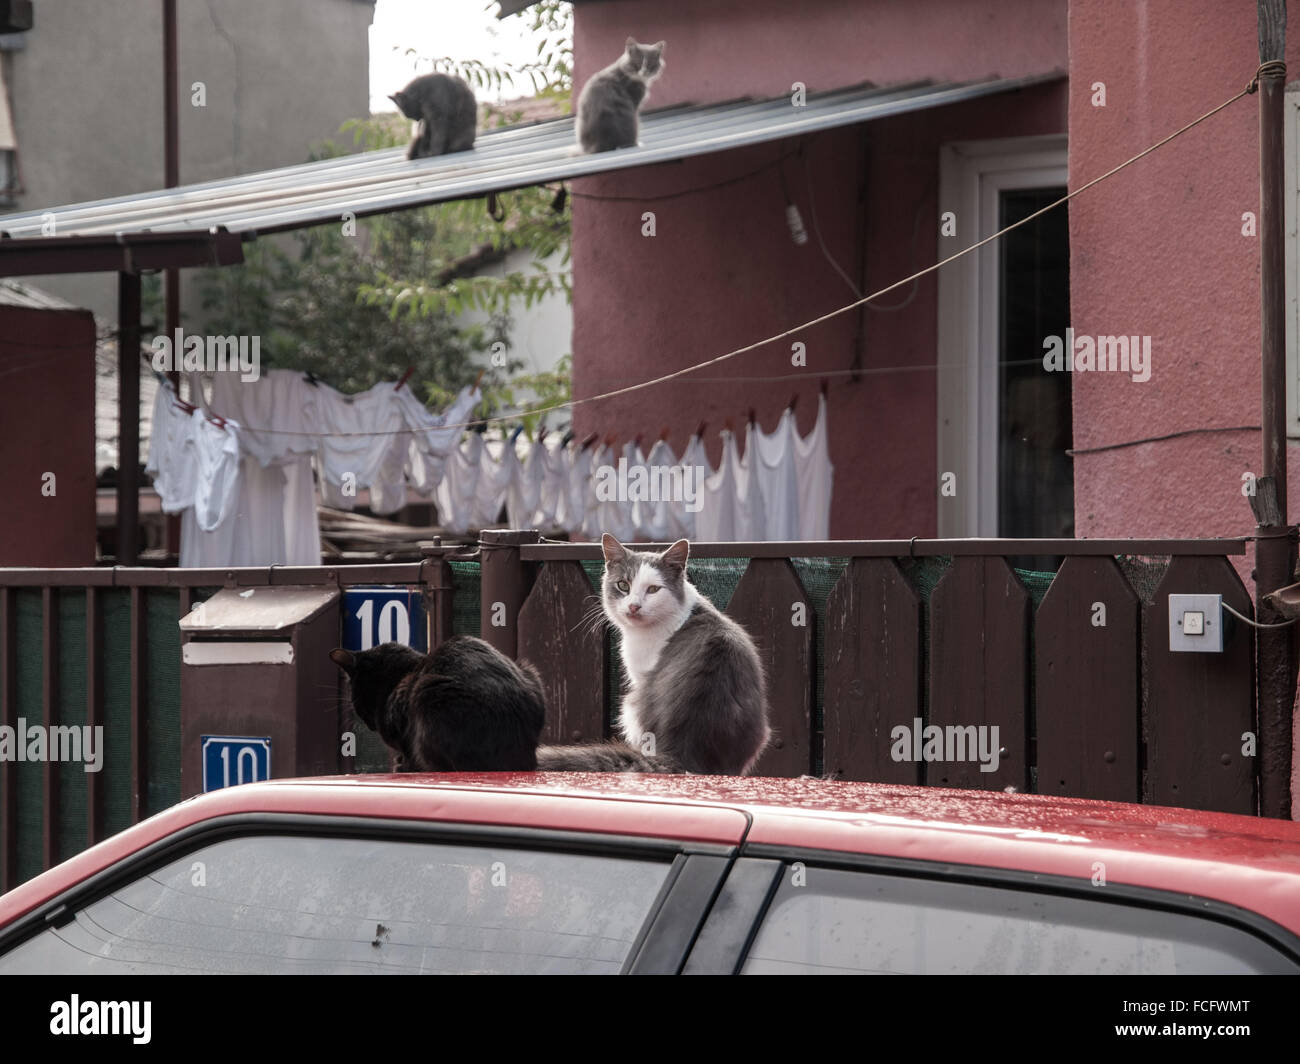 Four stray cats on roof of car and house in Skopje, Macedonia, Europe. - Stock Image